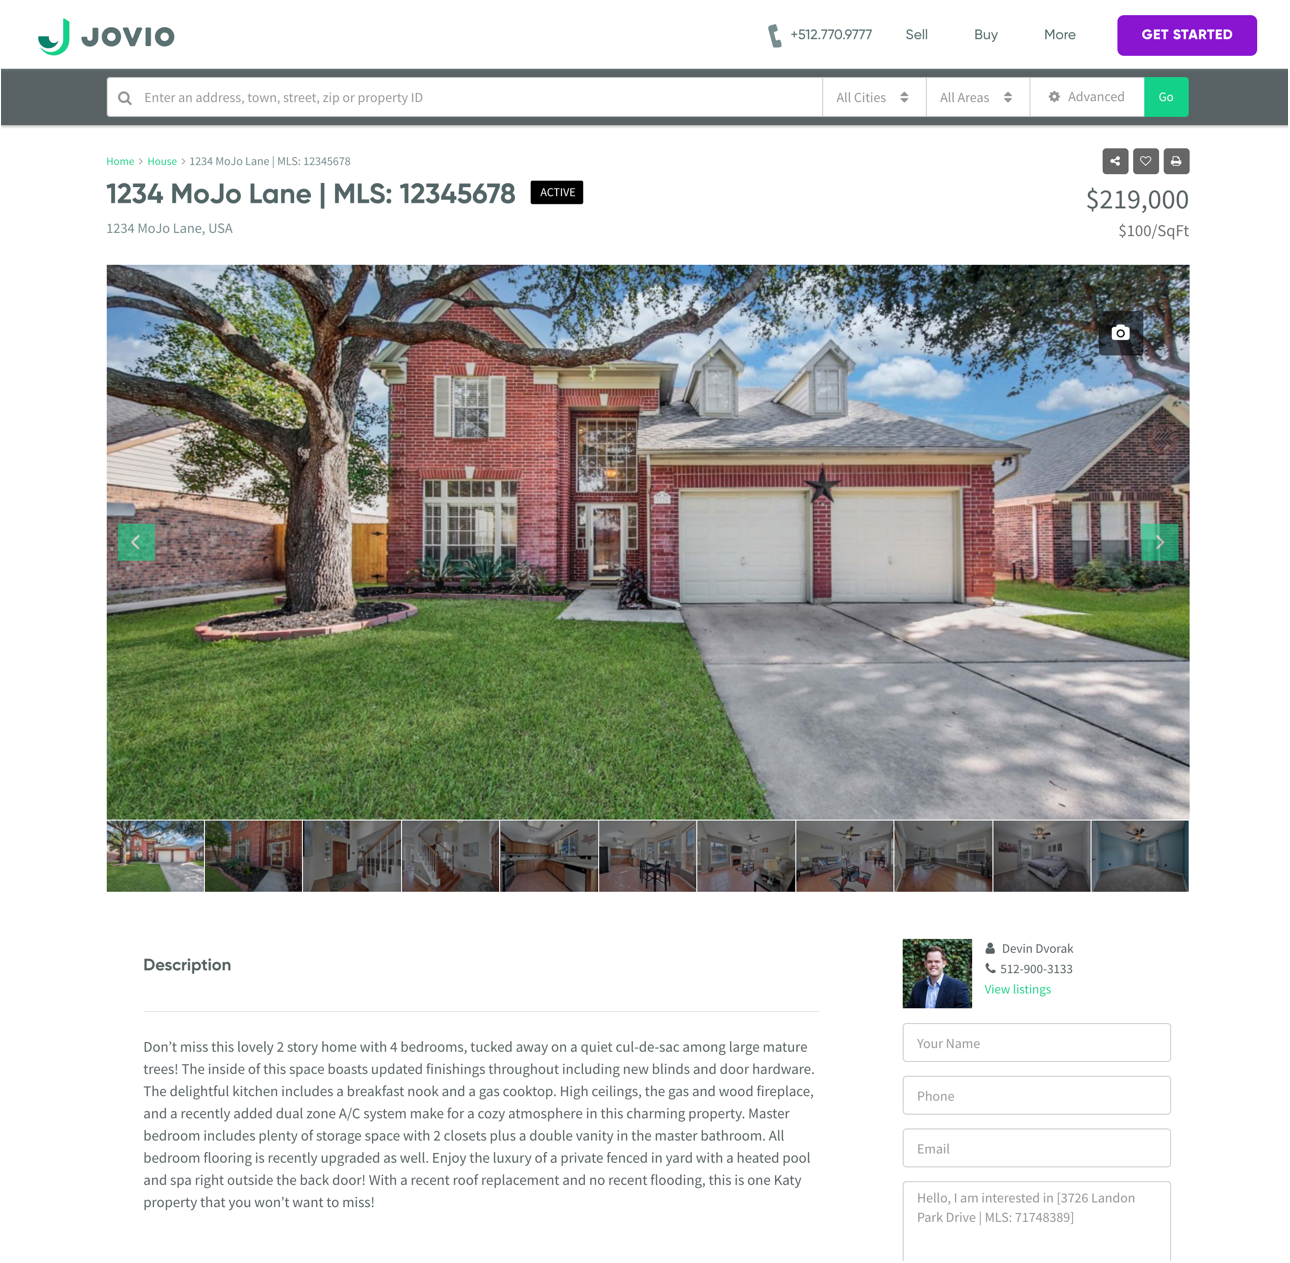 screen showing a home listing with photos and a property description on the Jovio website